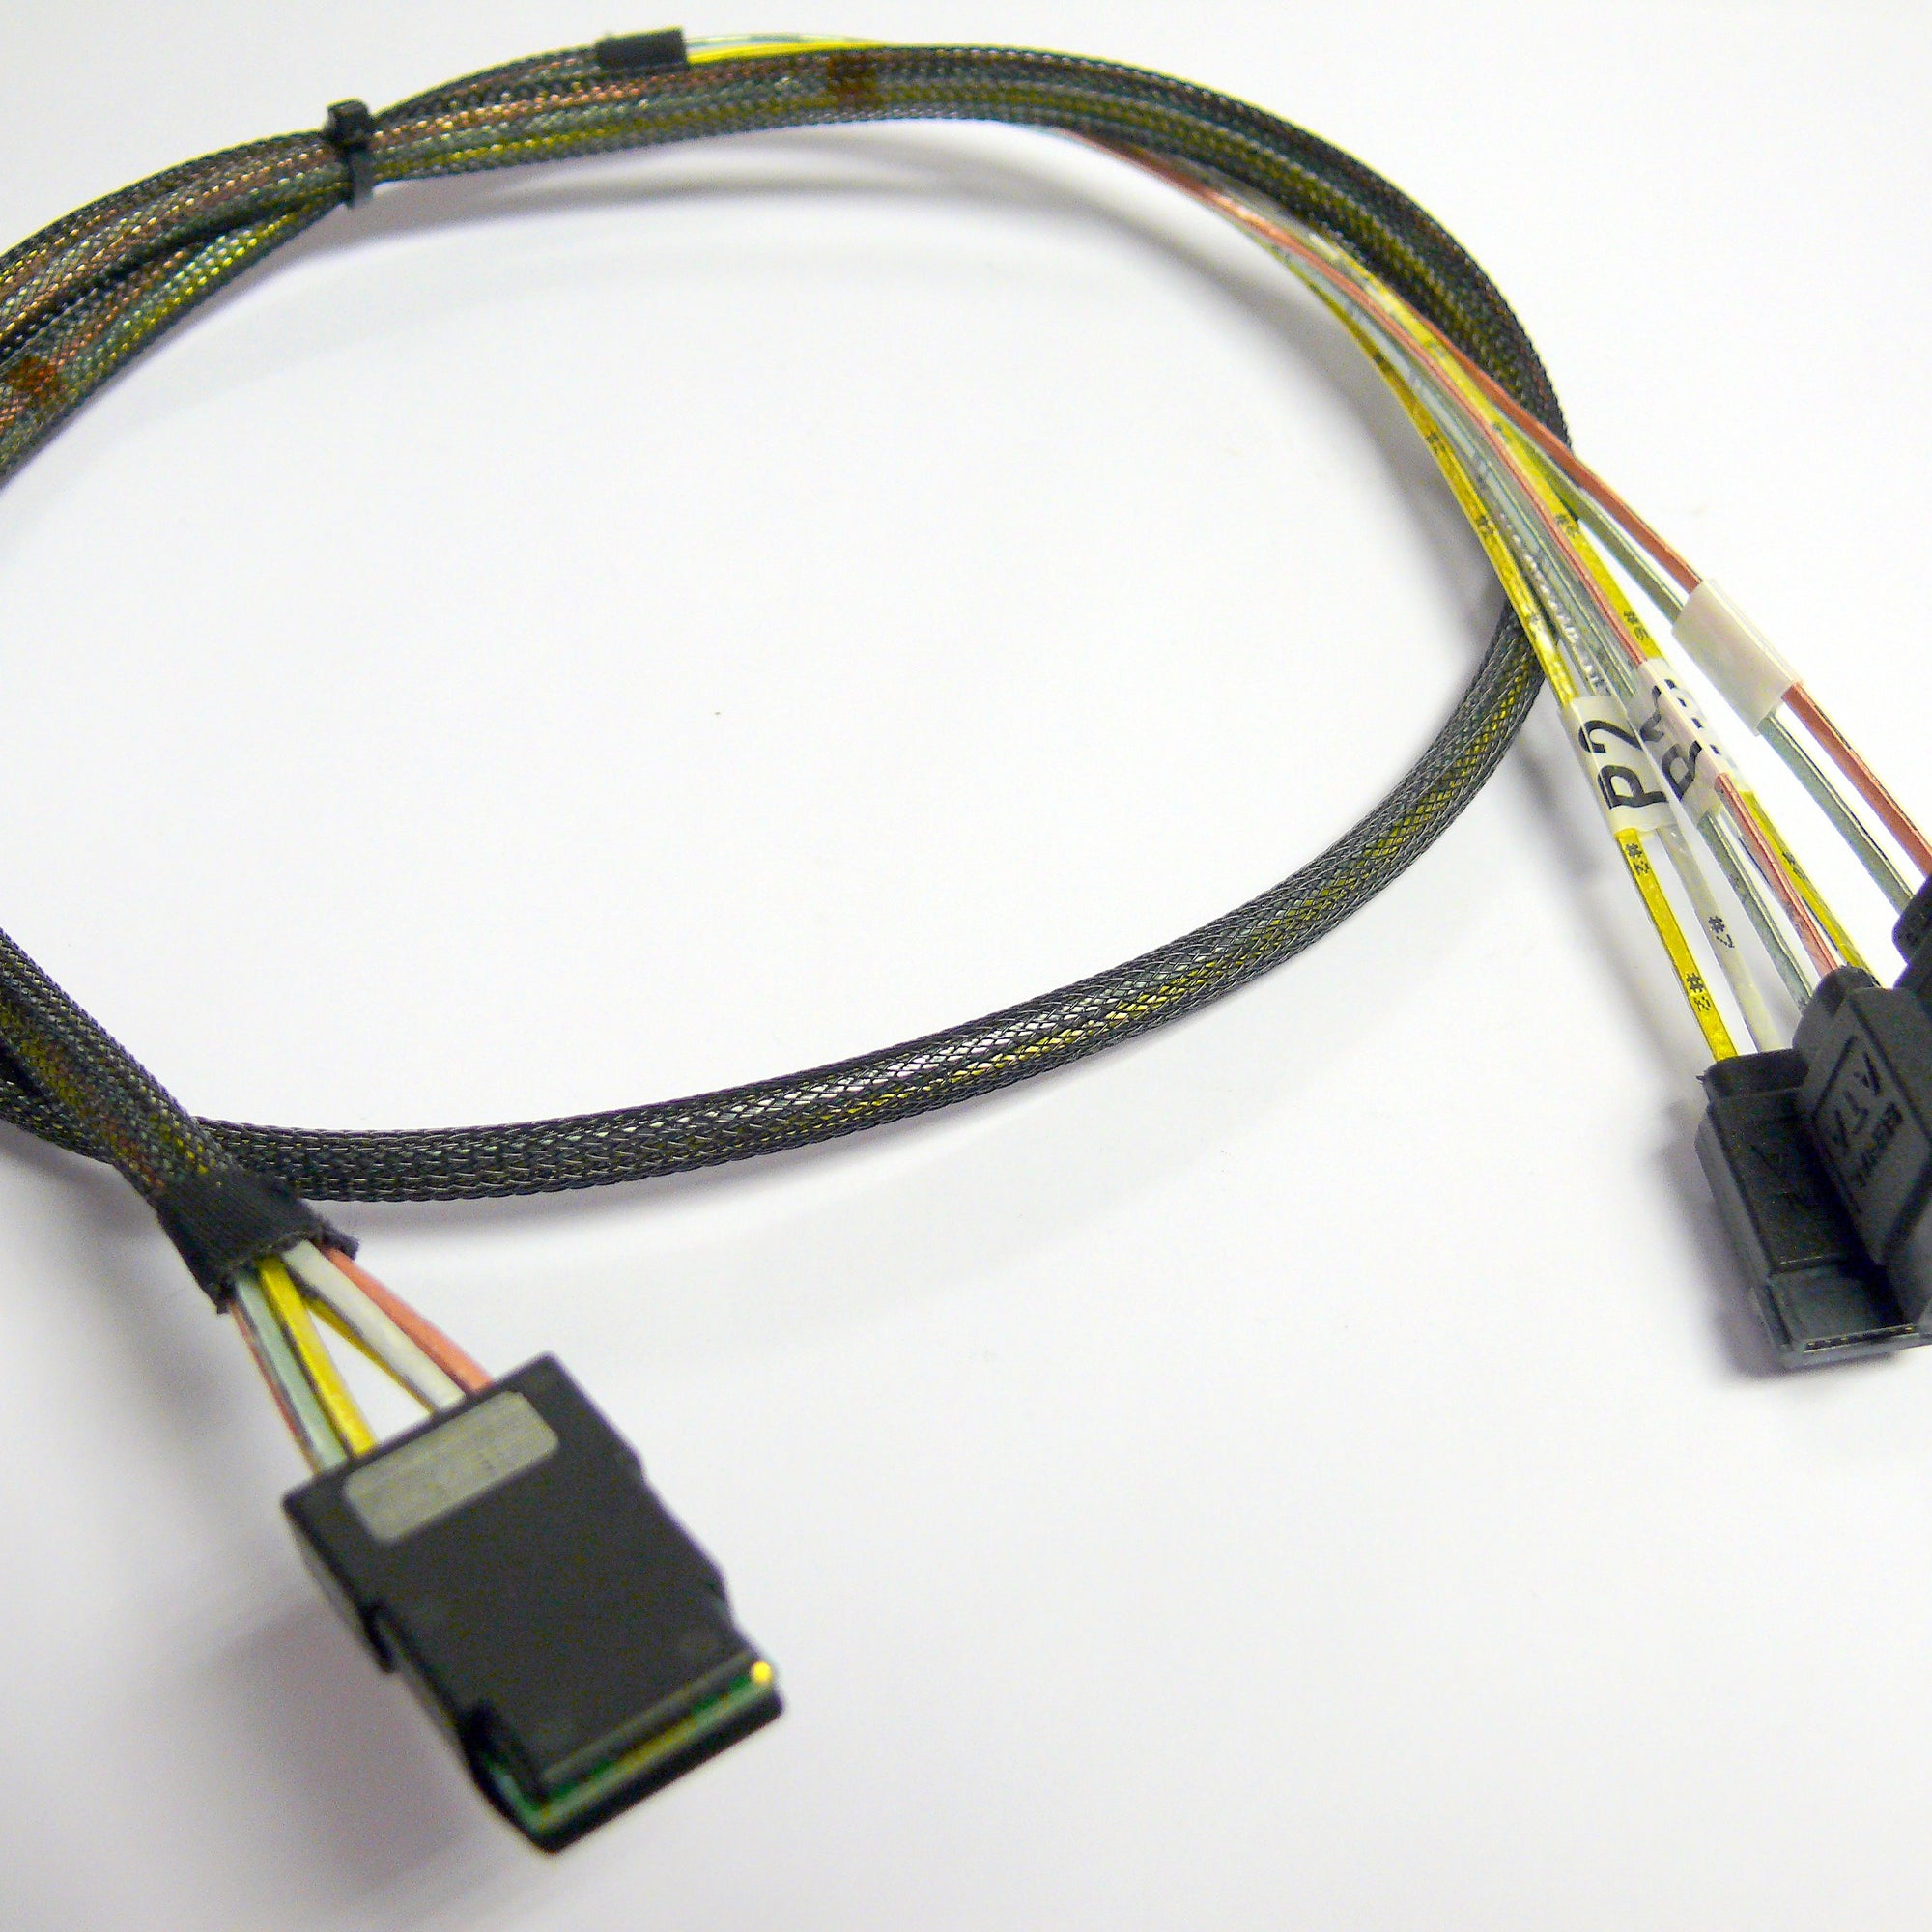 SAS Cable Assembly